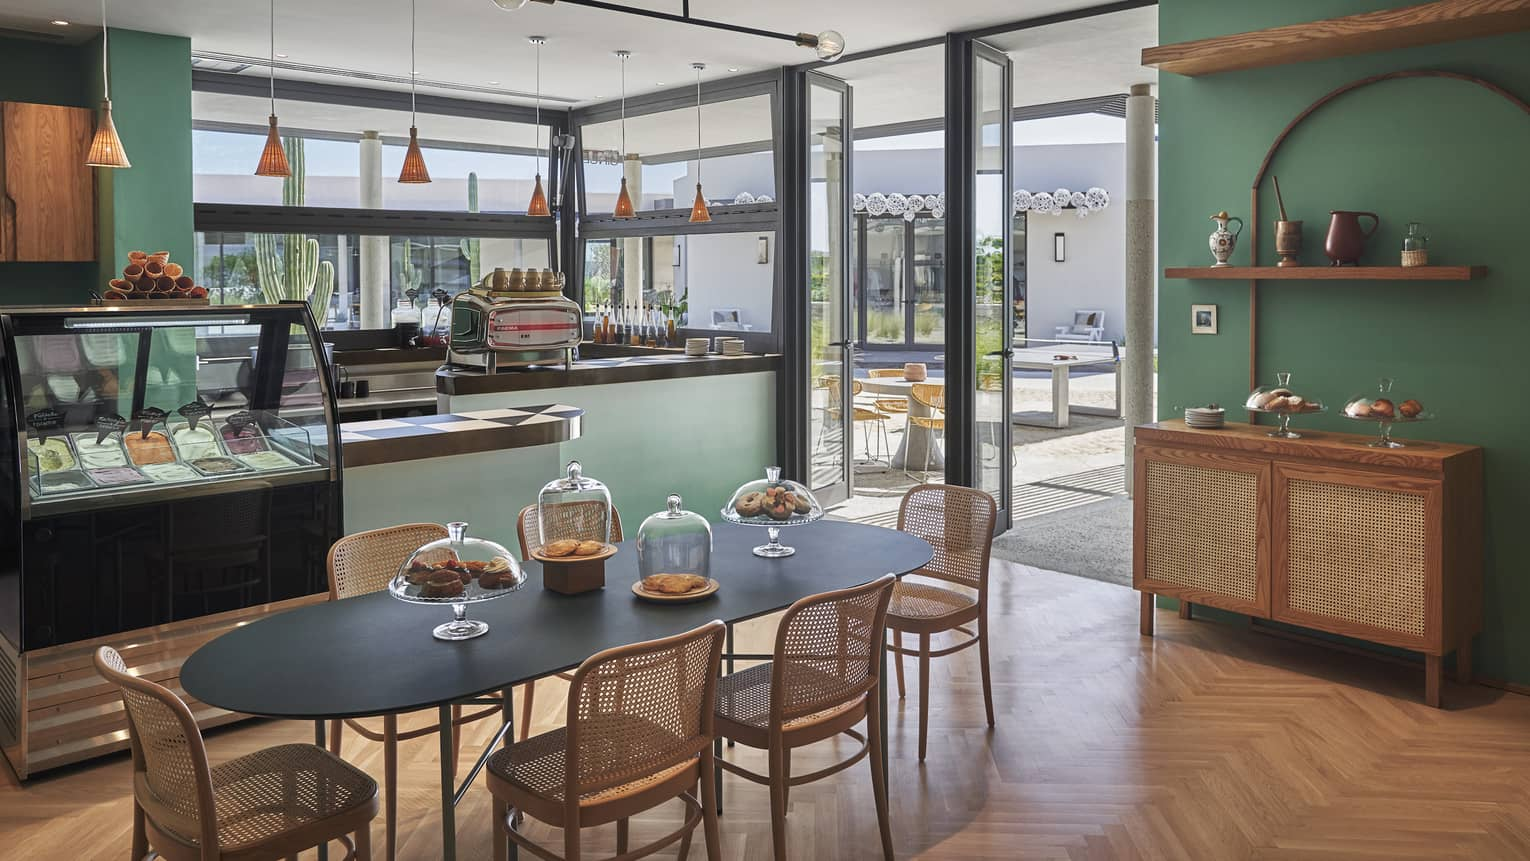 Green-walled Gingers dining area, black oval table and wicker chairs, food display case